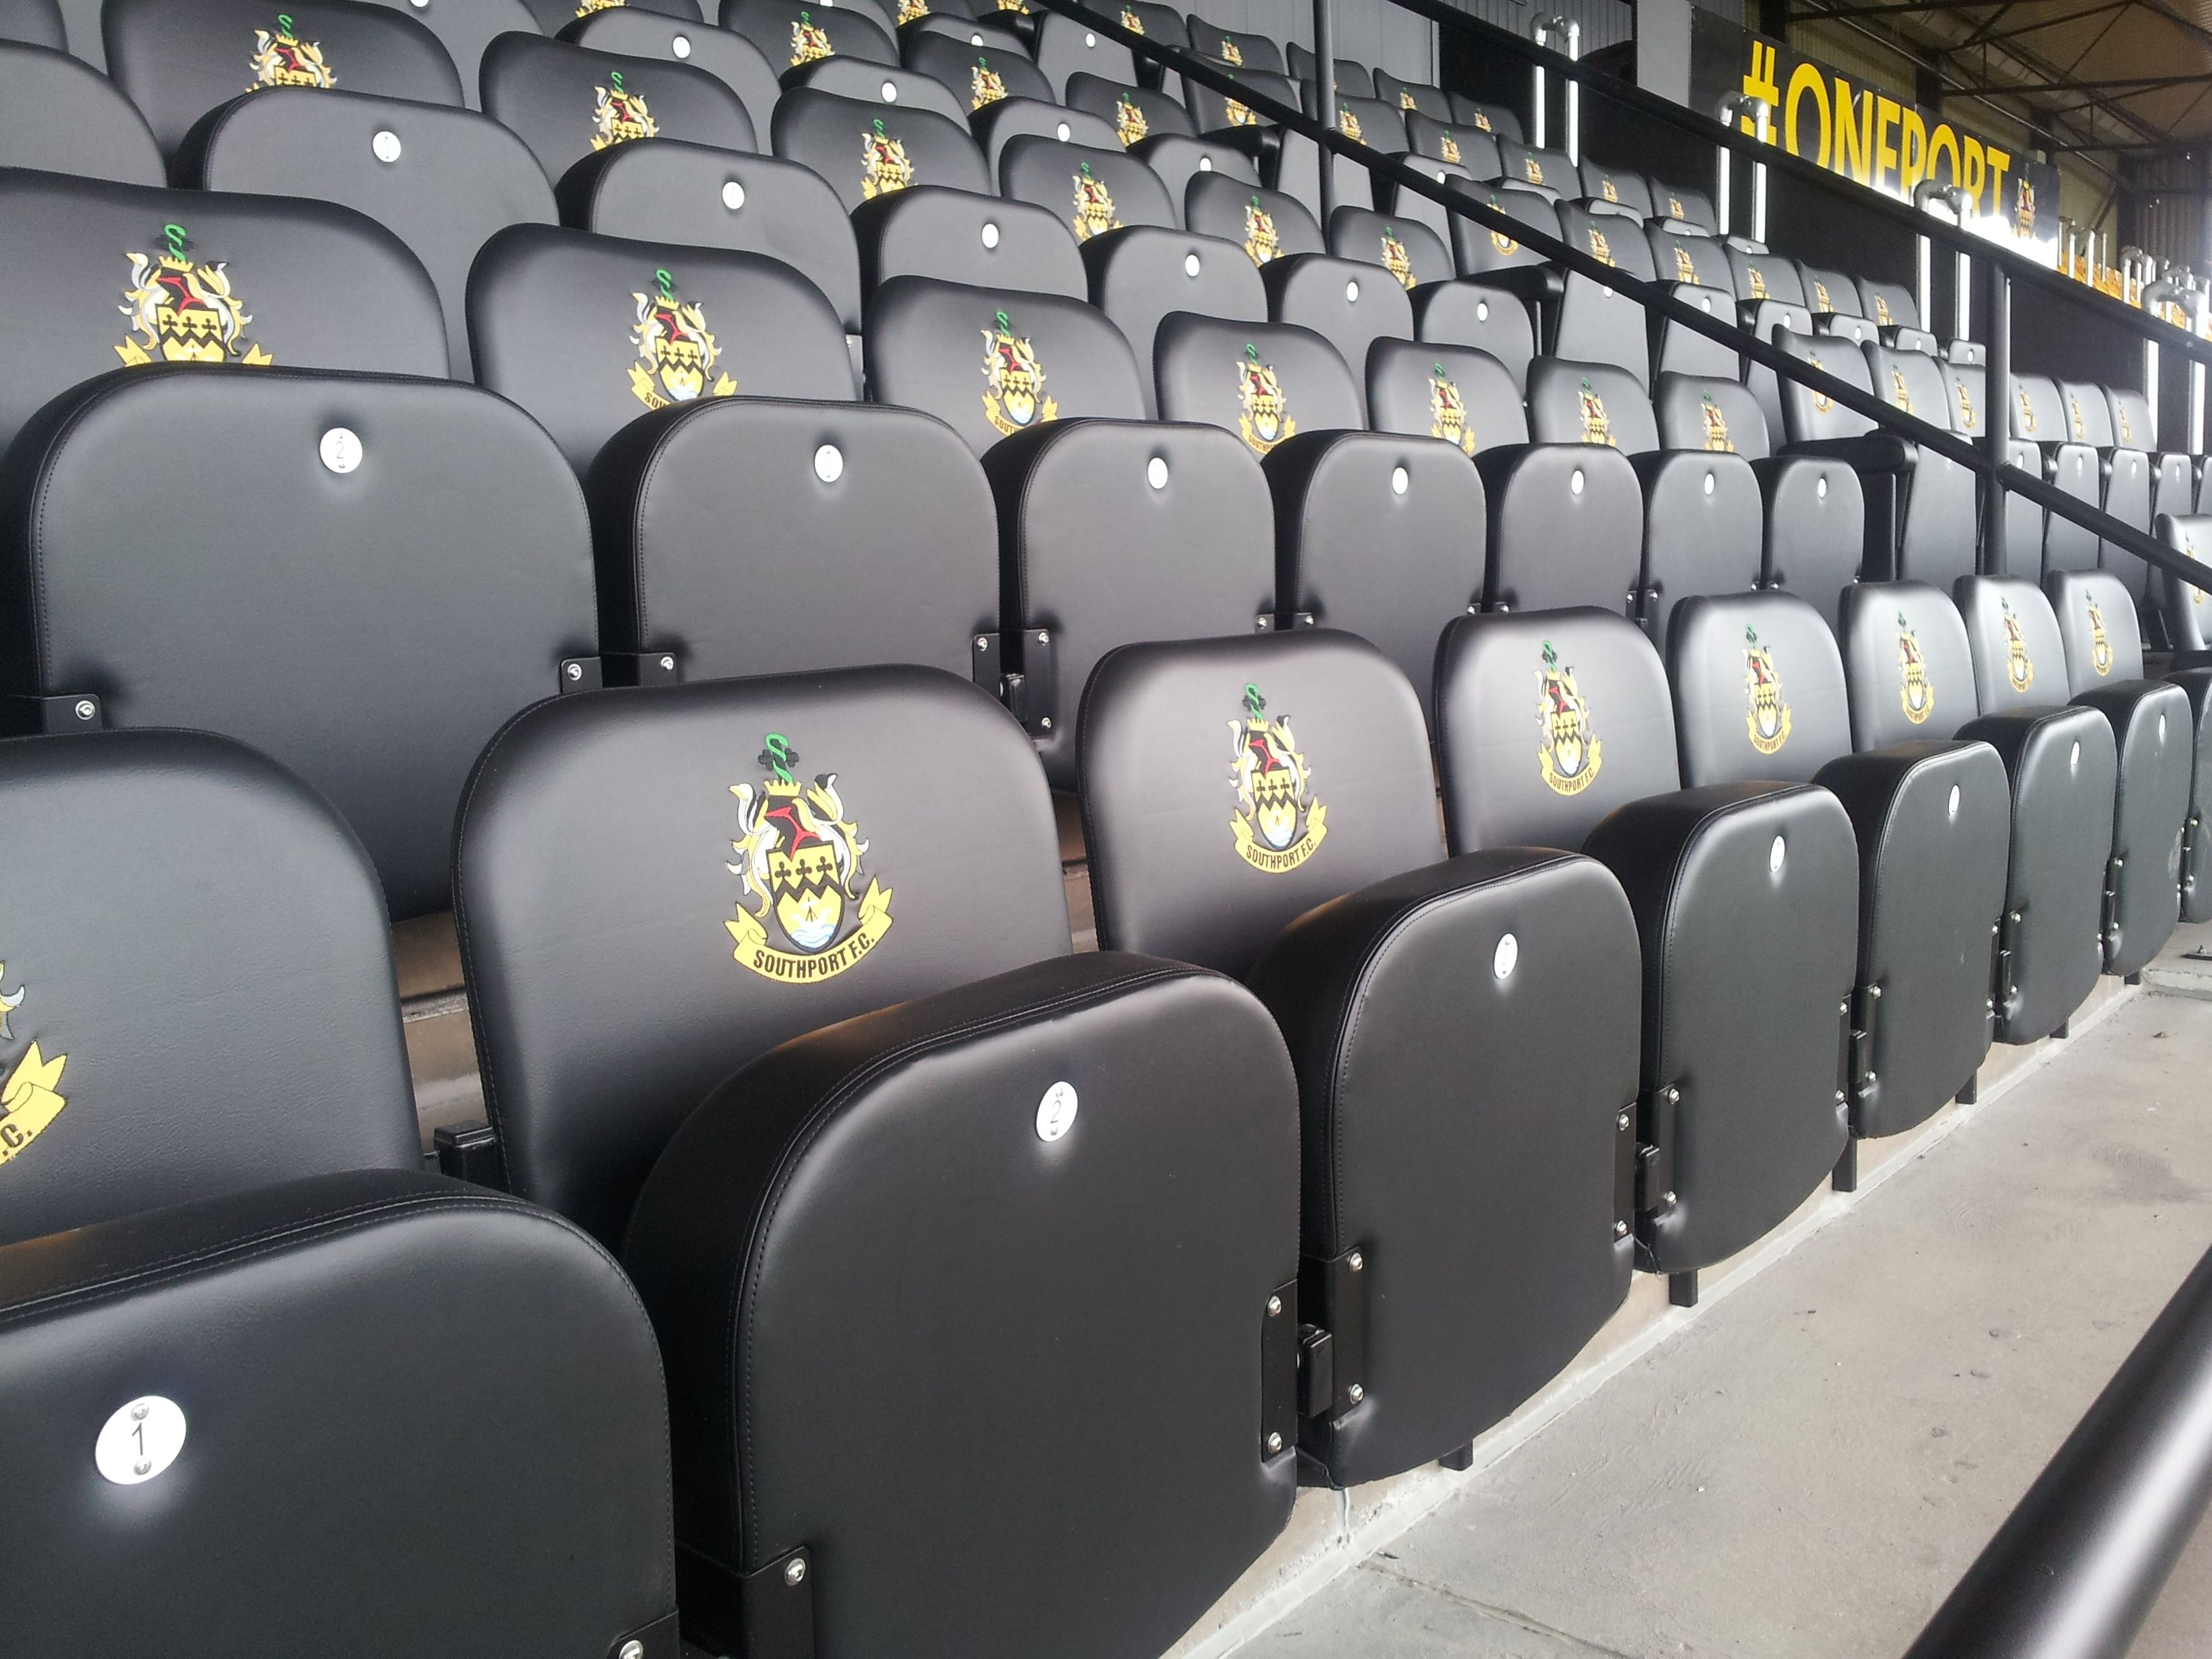 Stadium Chairs With Backs.Evertaut Club Luxury Stadium Seats Upholstered In Black